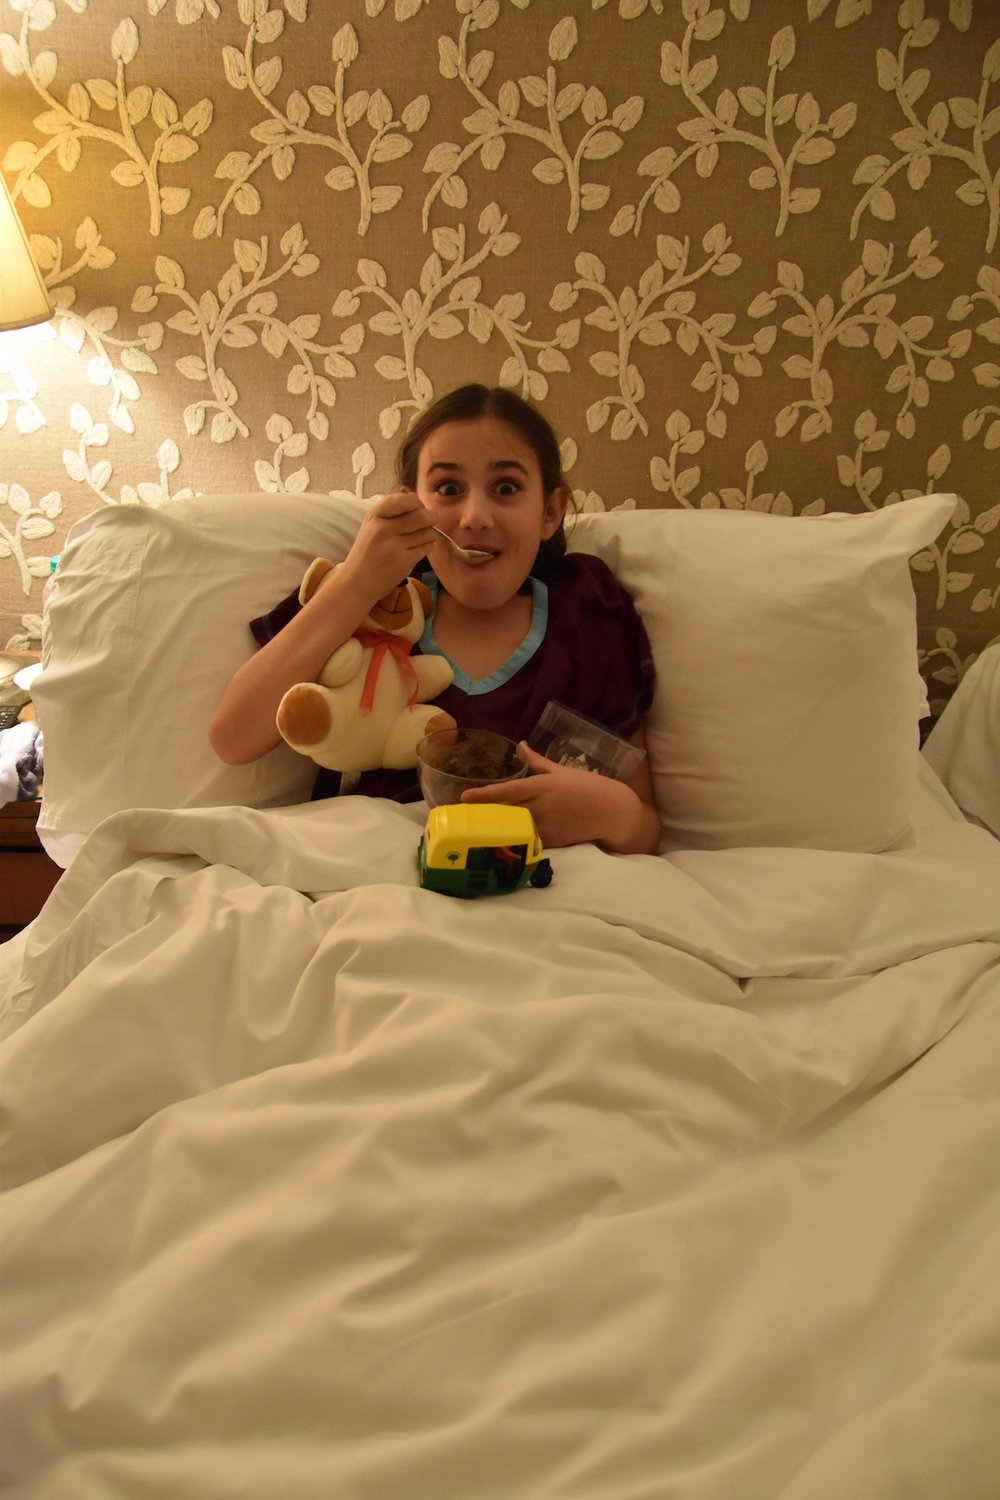 Amelia enjoying chocolate ice cream in bed, which was sent up to her by the restaurant manager (along with a series of gifts) as a surprise